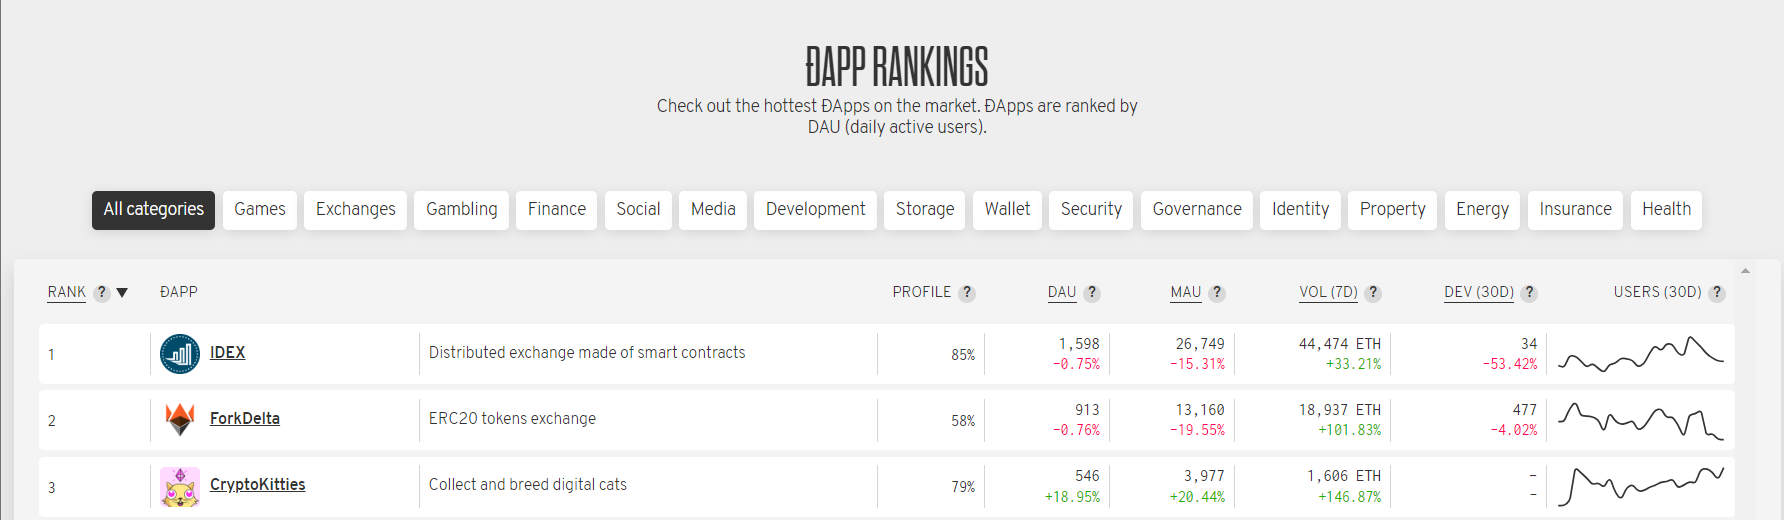 STATE OF THE DAPPS 見方 使い方 Dapps ブロックチェーンゲーム